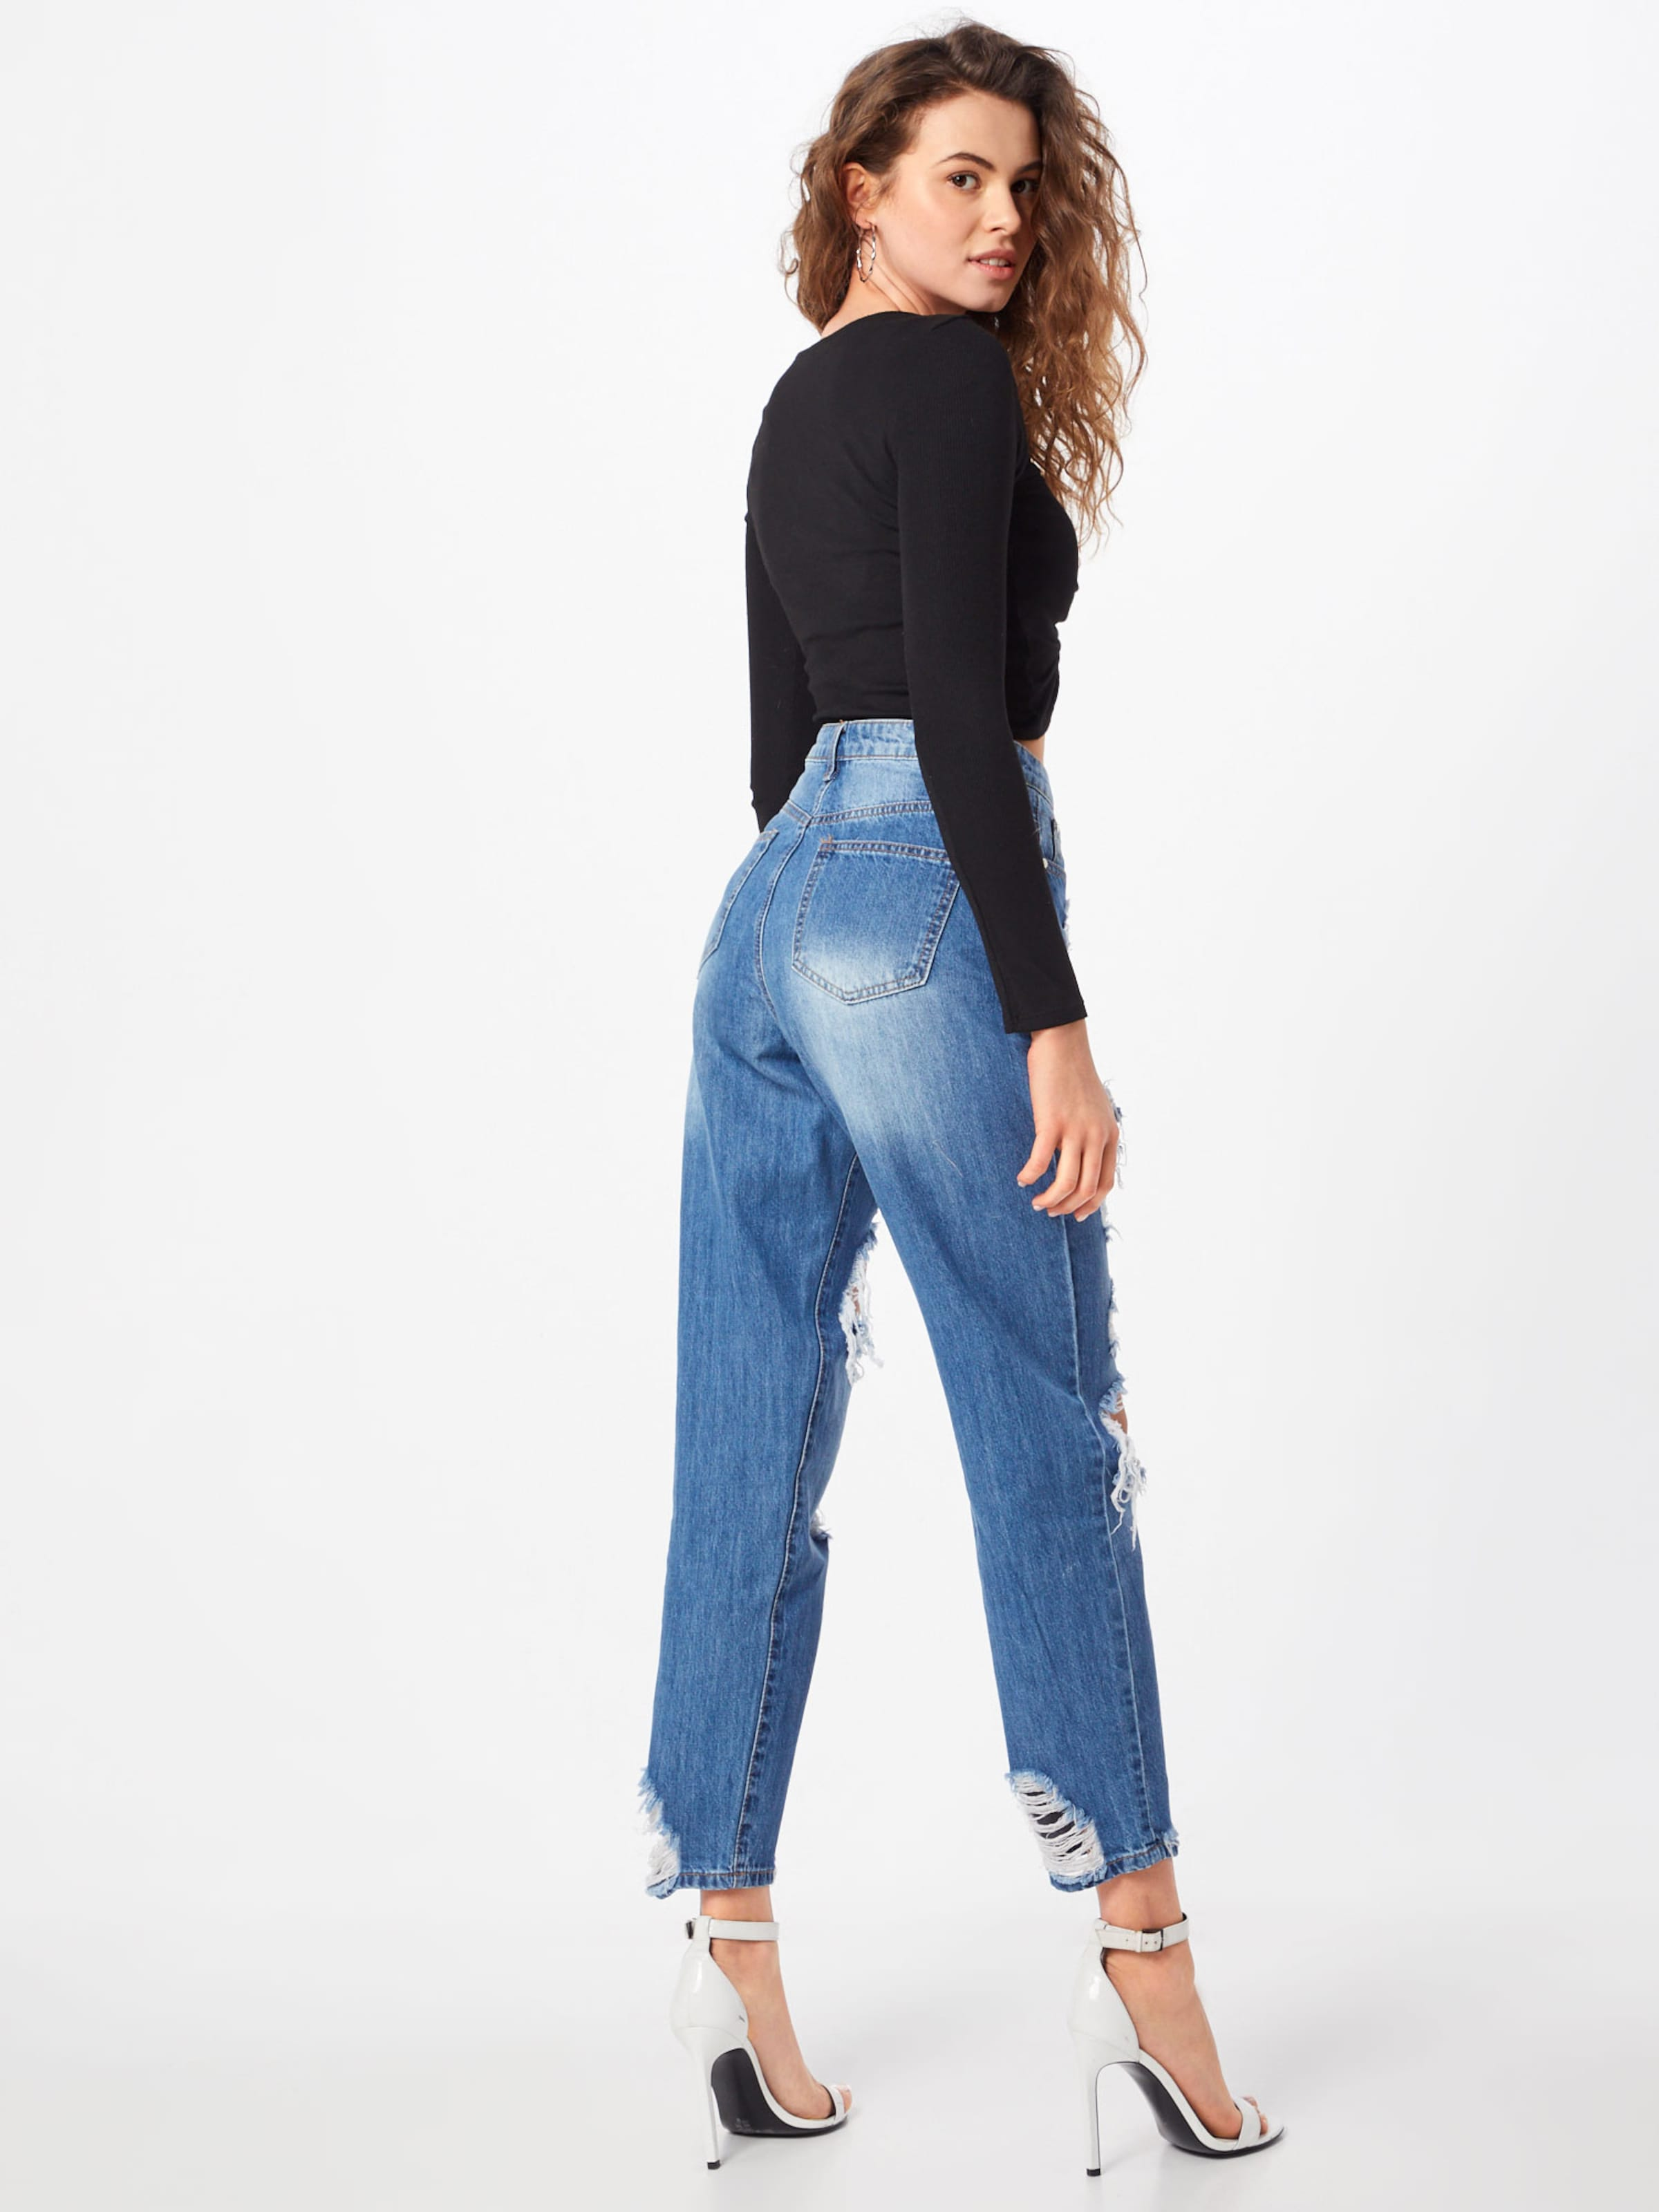 In Blau 'riot' 'riot' Jeans Missguided Missguided Jeans In 53RcjS4ALq